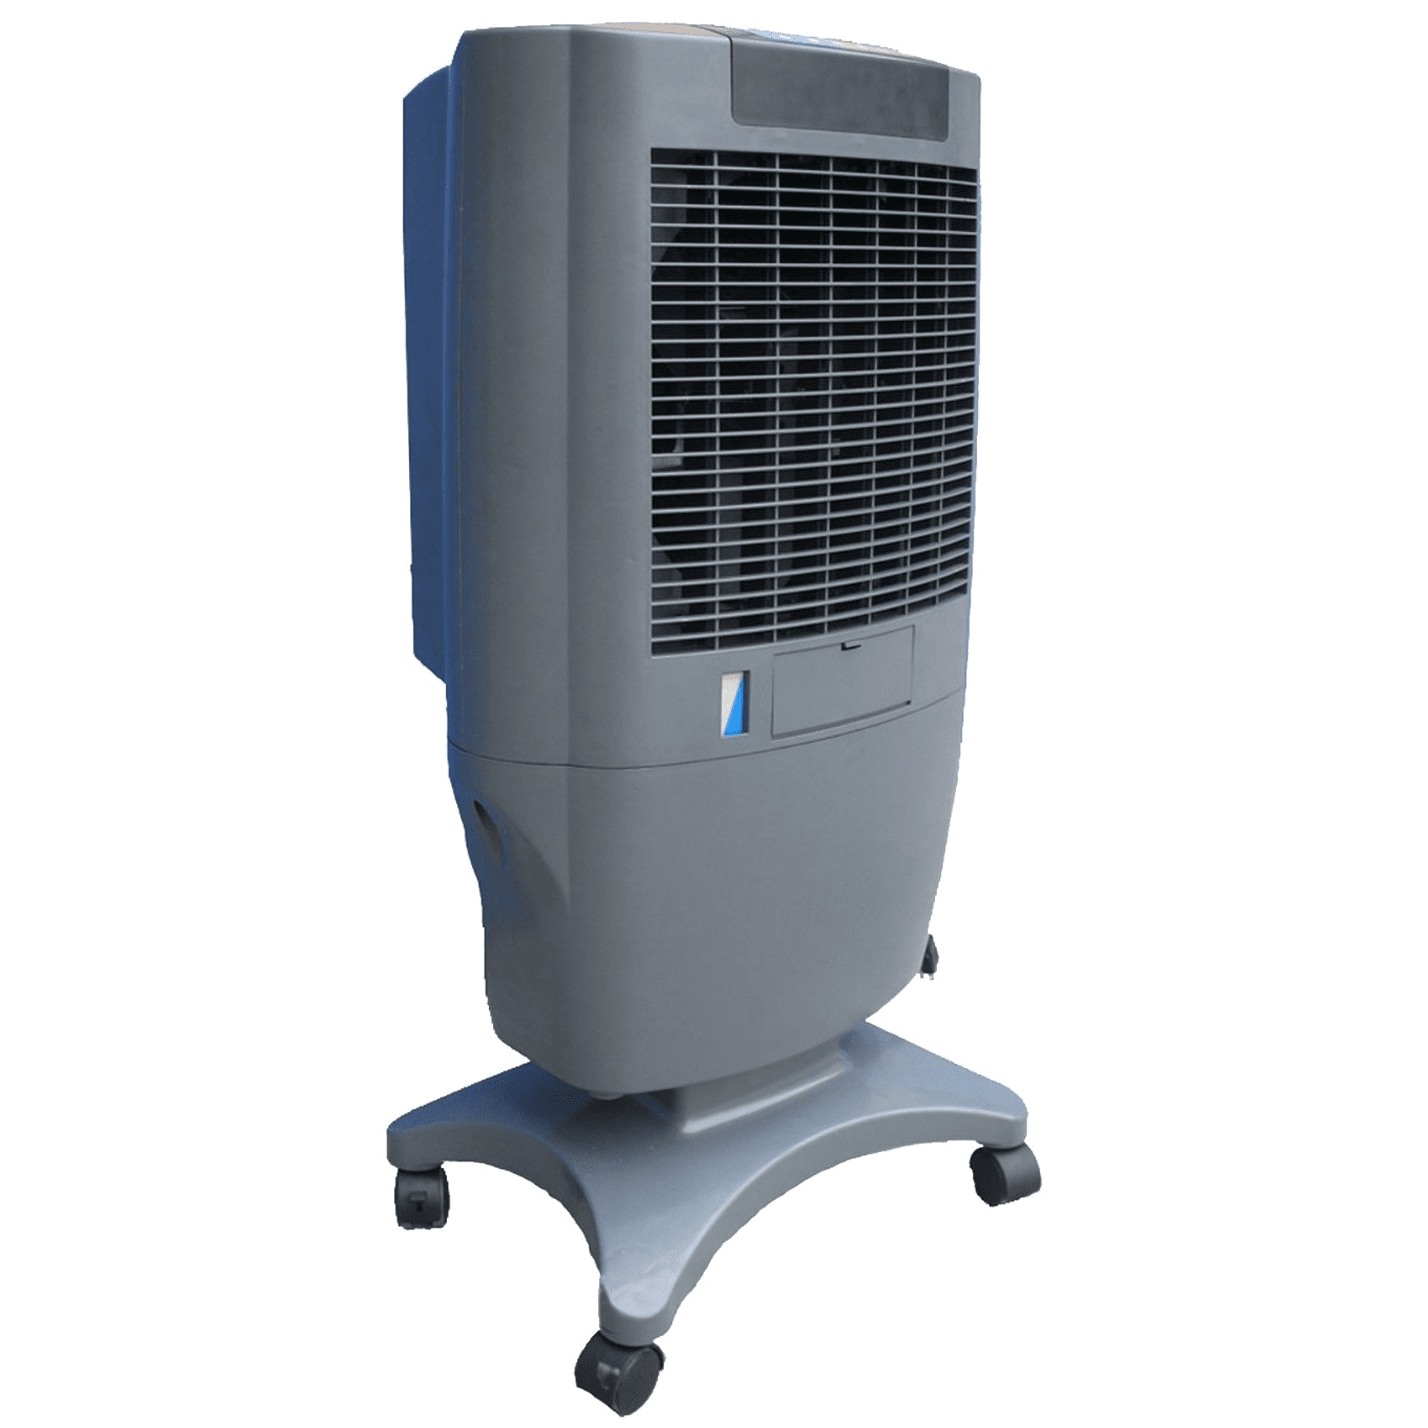 Champion Ultracool Cp70 Portable Evaporative Cooler